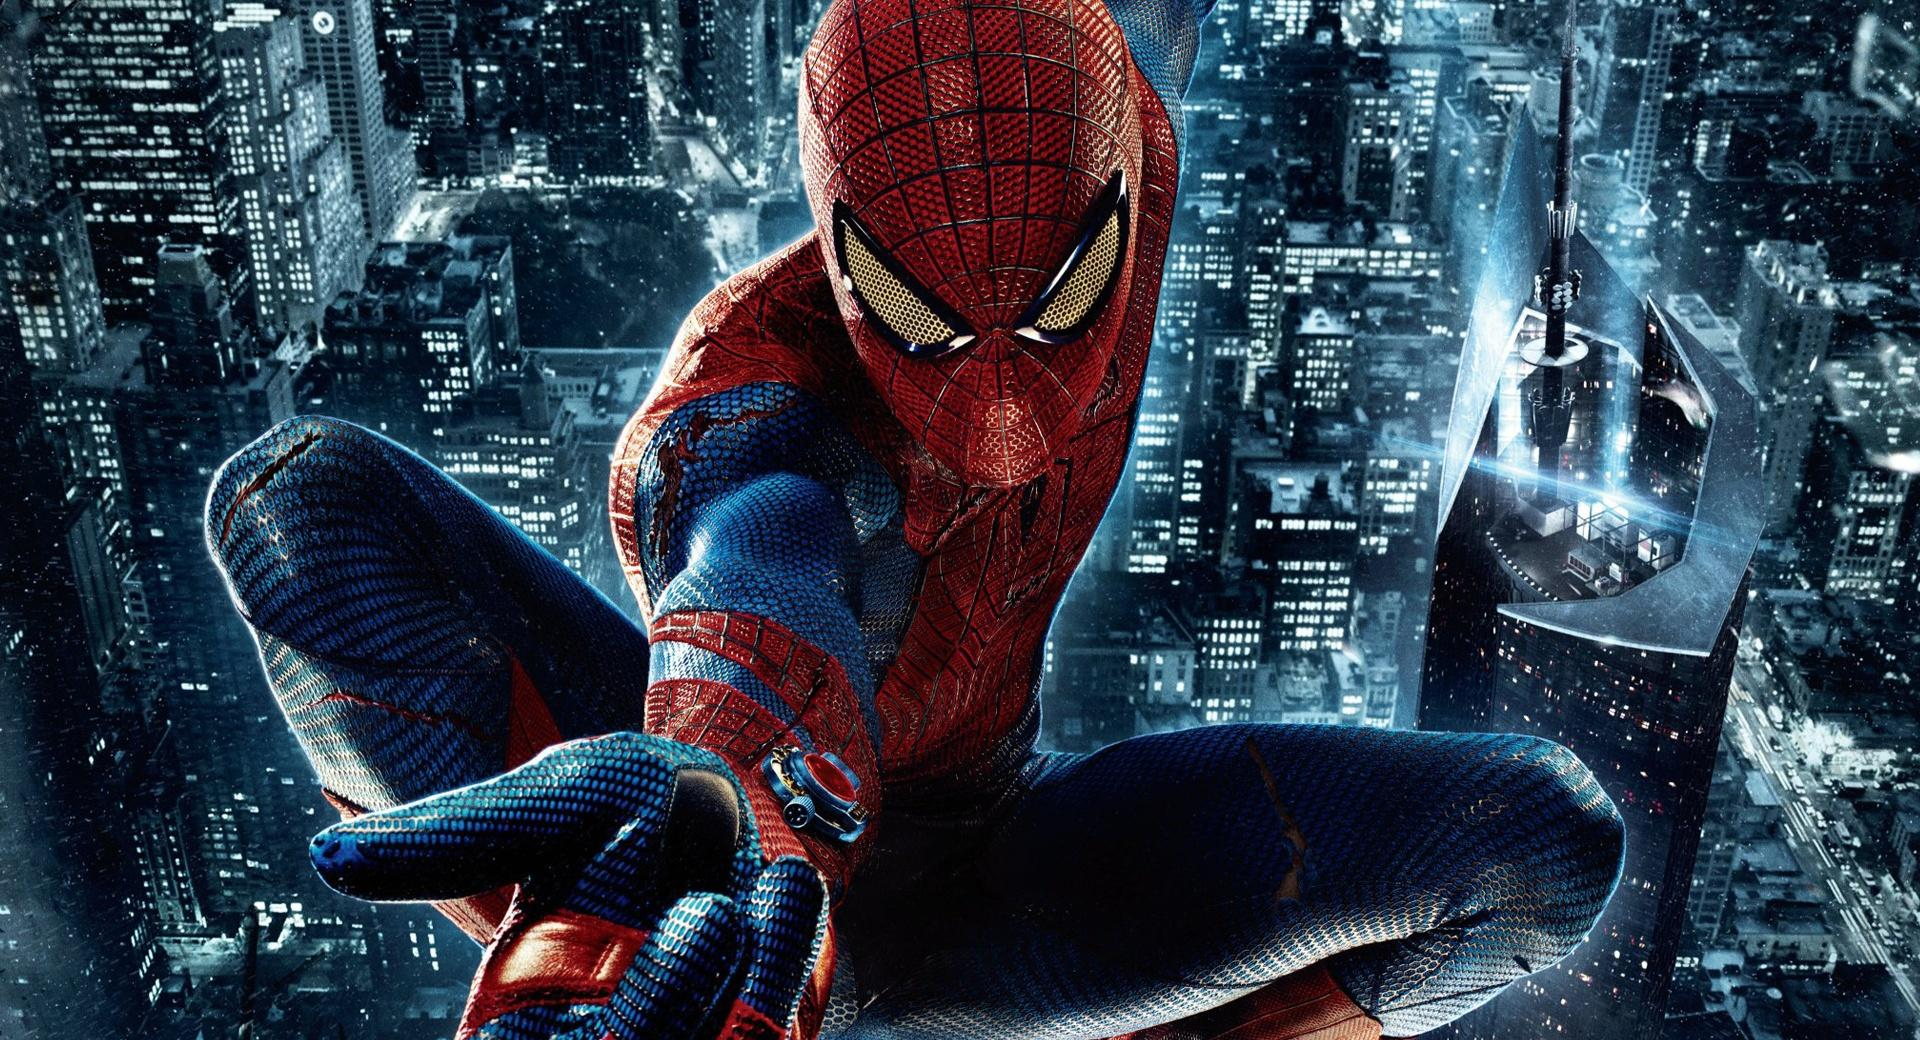 Spider Man 4 wallpapers HD quality